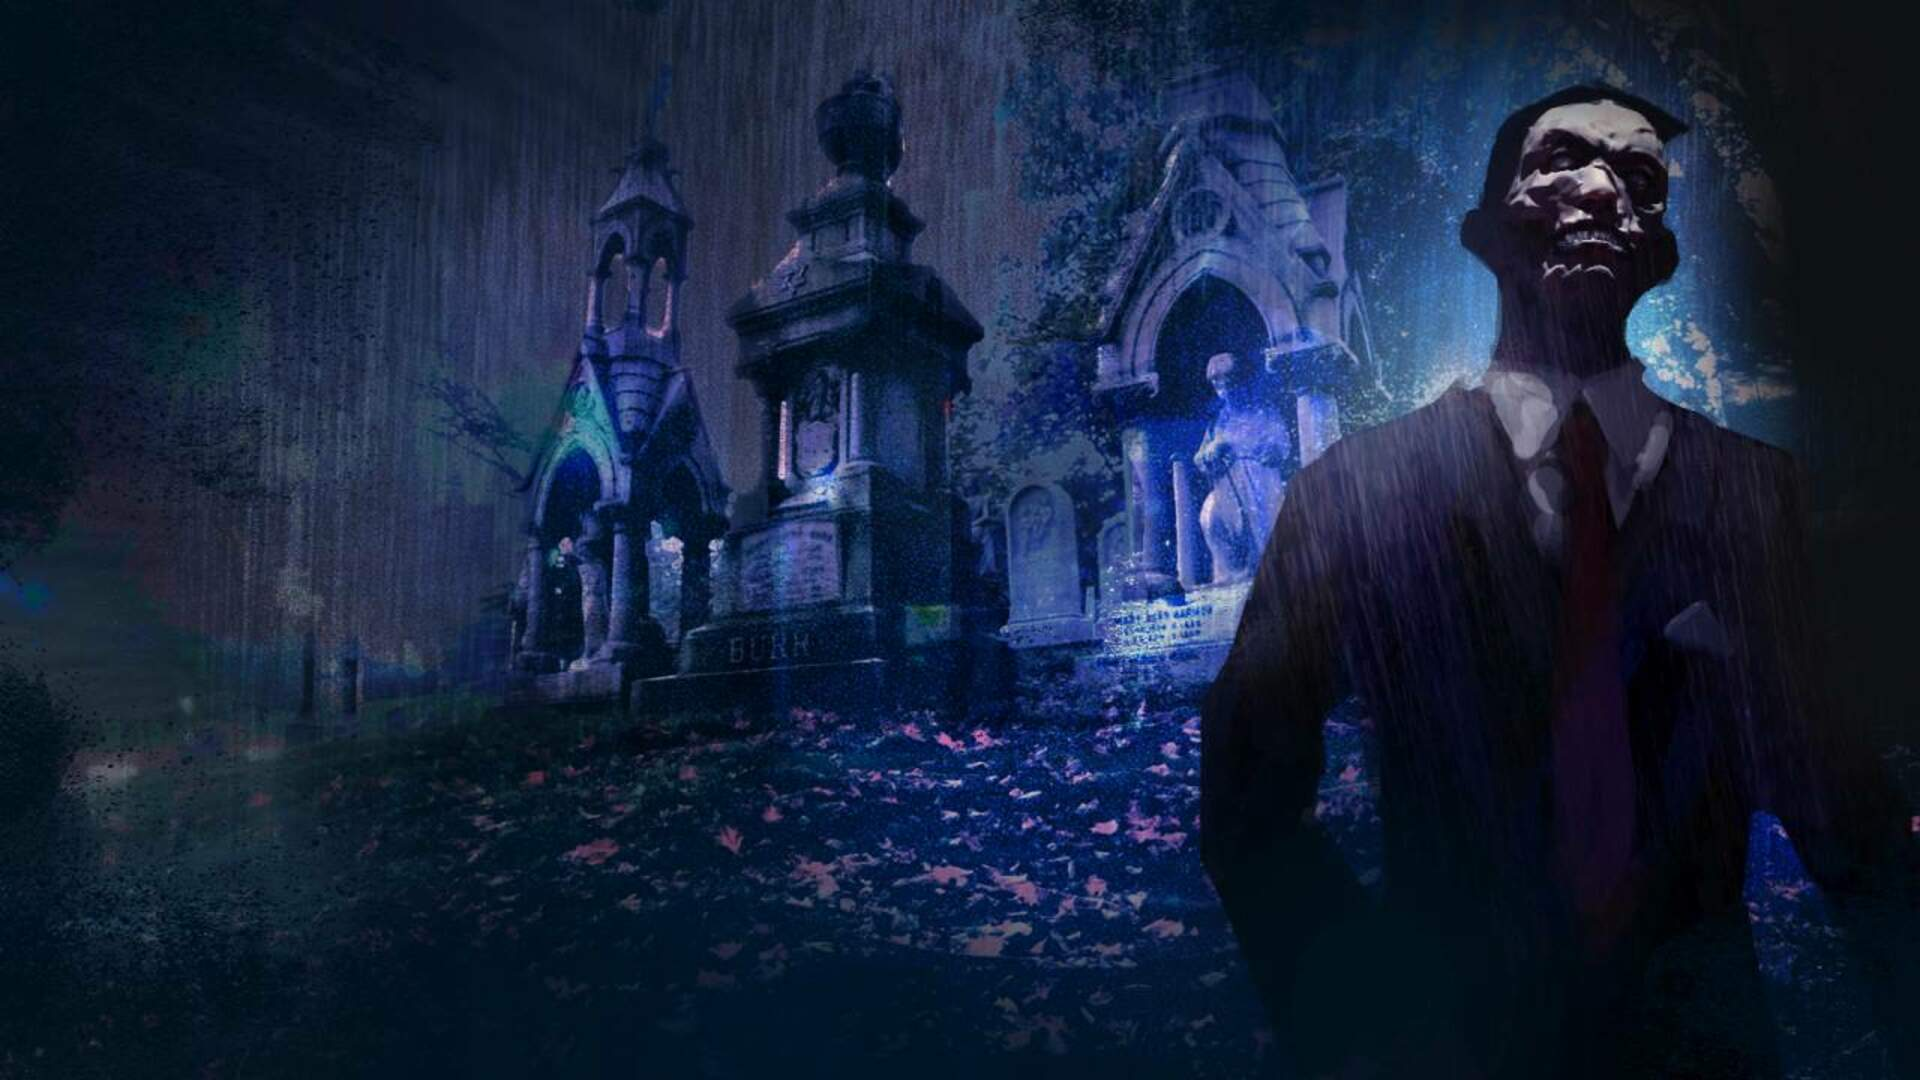 A New Vampire: The Masquerade Game Is Bringing The Series To Switch For The First Time